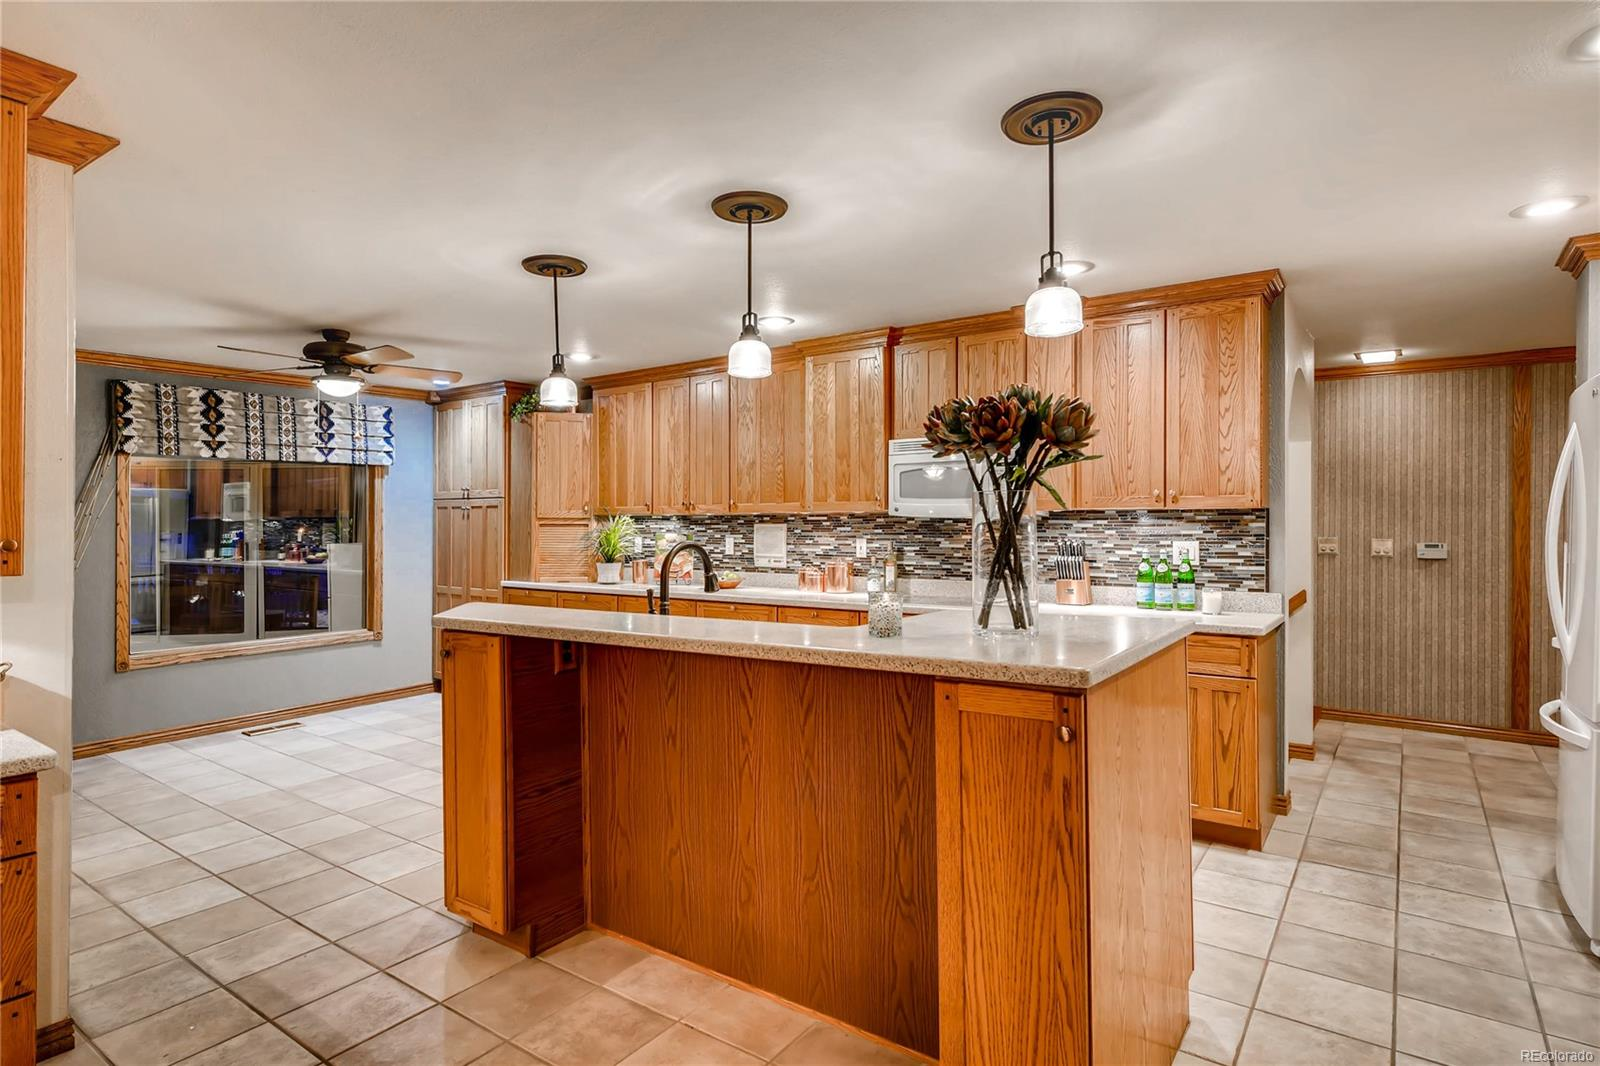 Large, eat-in Kitchen perfect for entertaining and family meals.